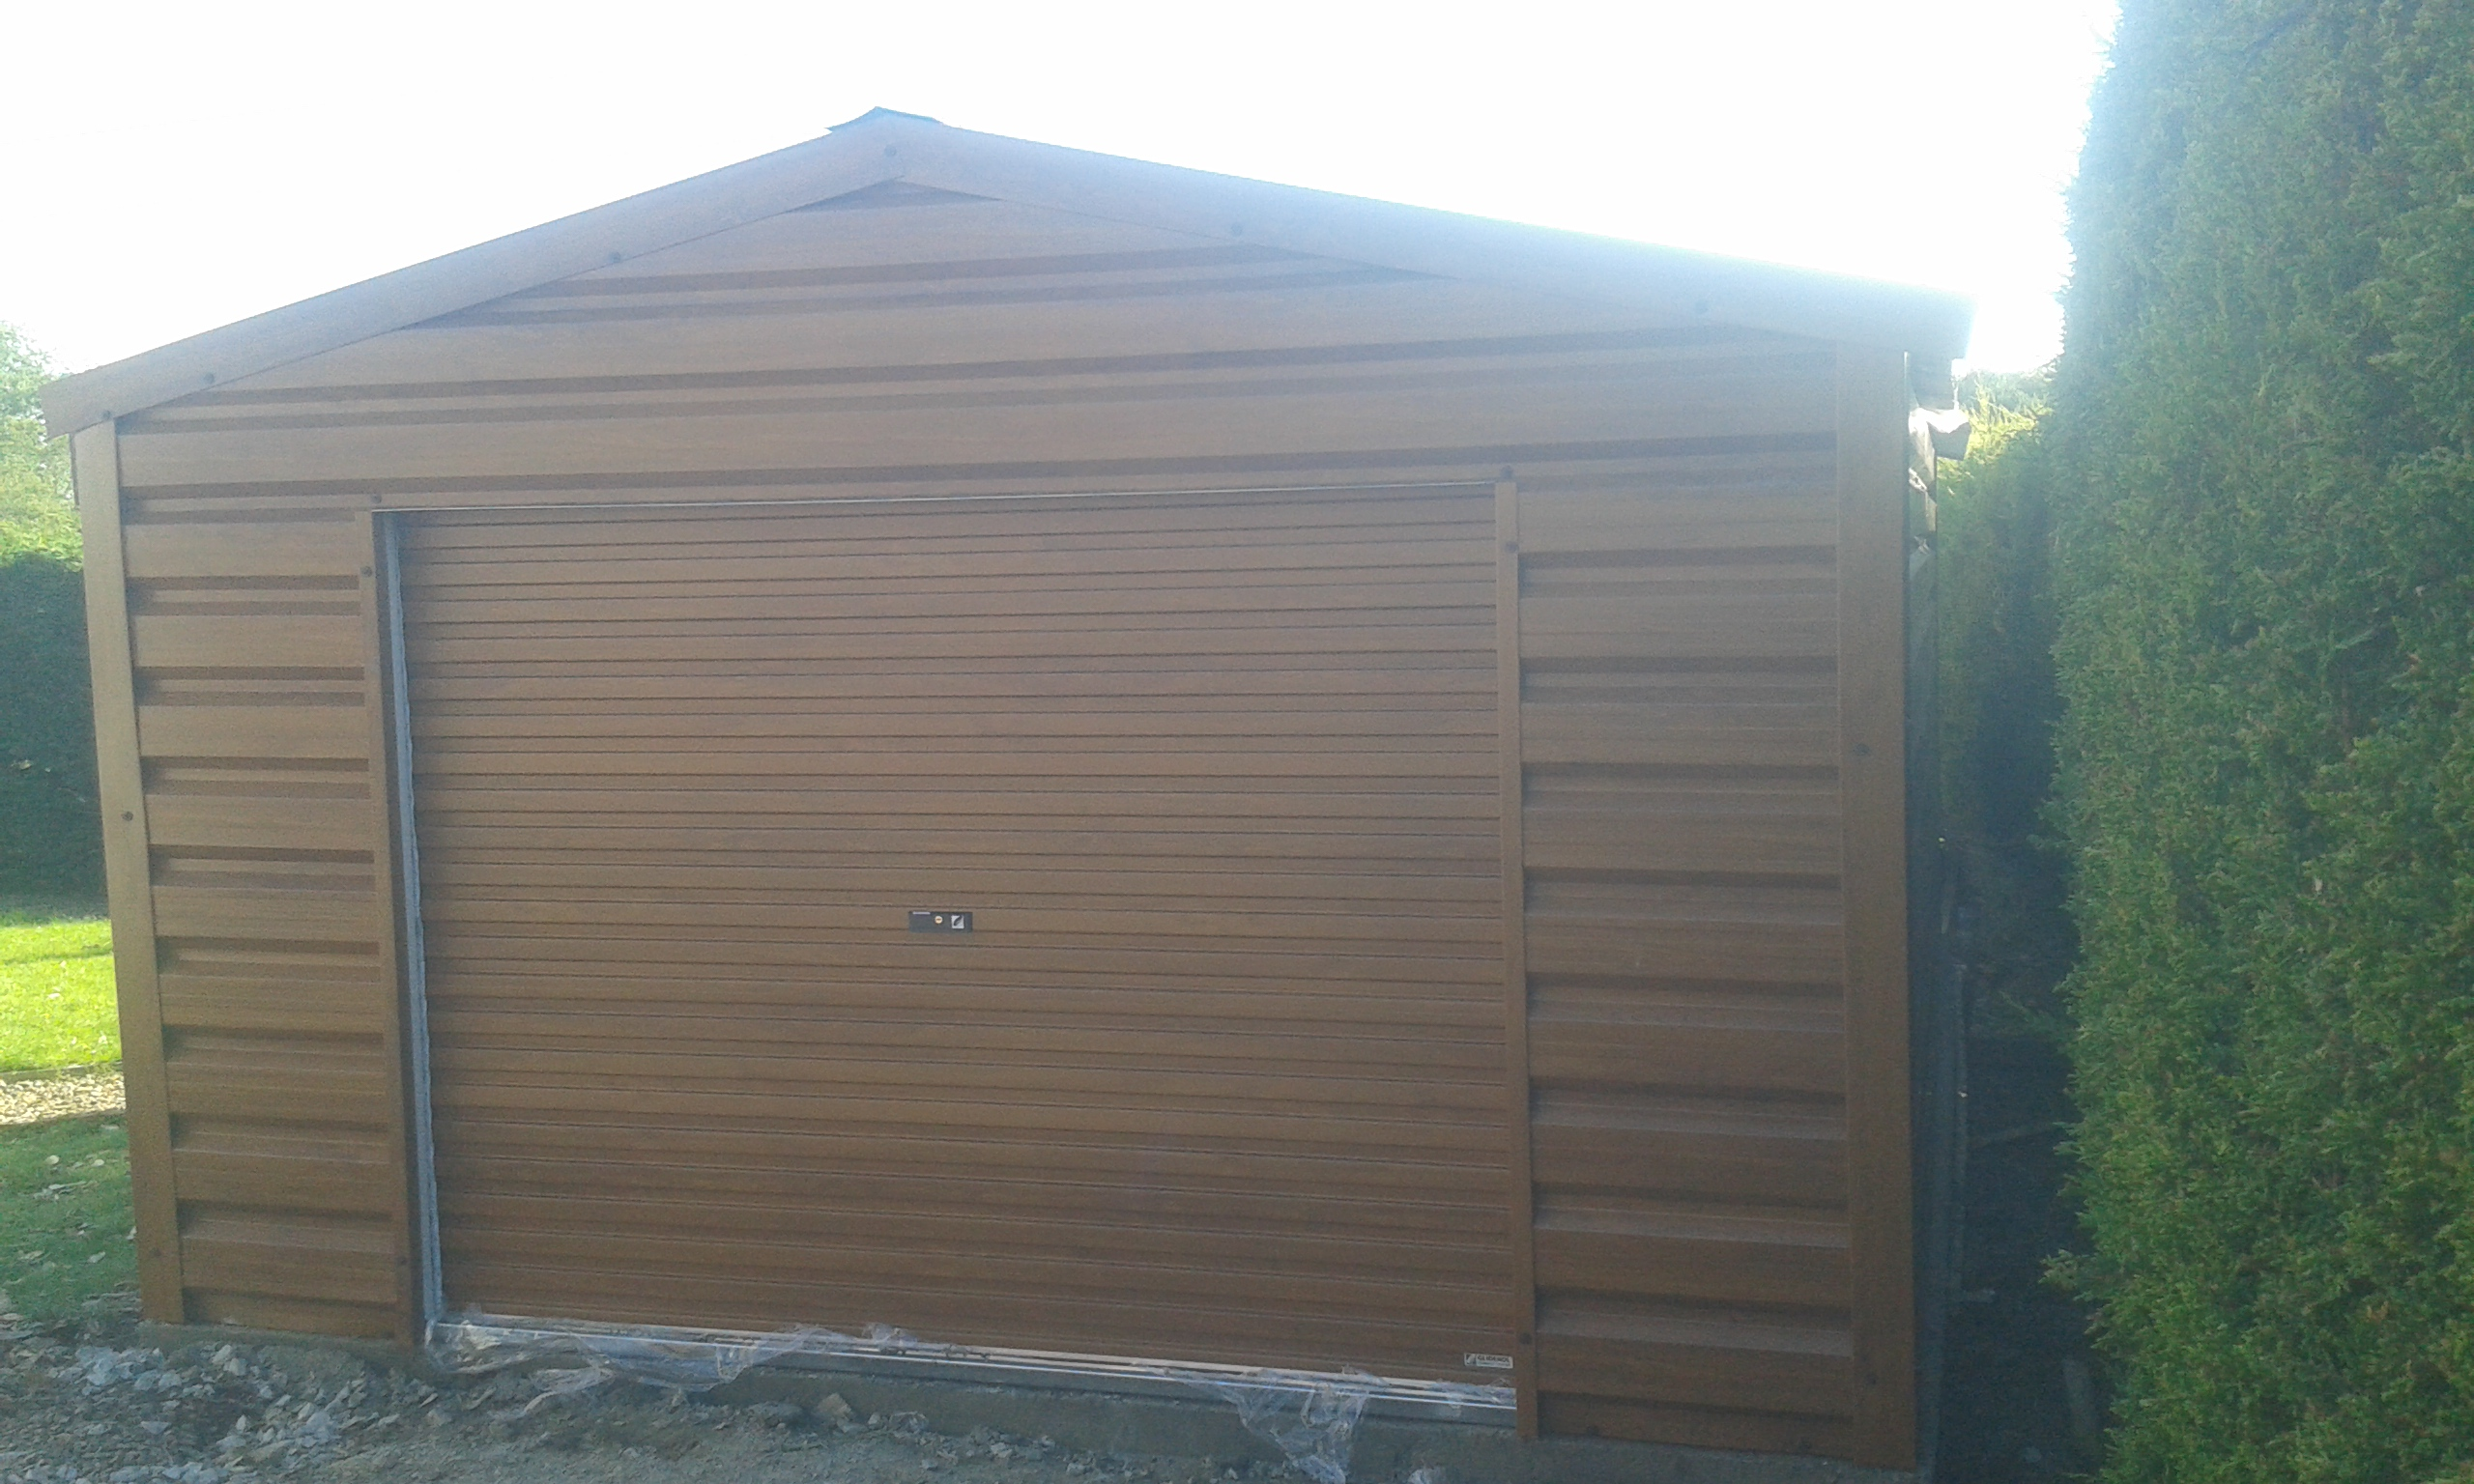 titan agricultural garage steel prefabricated building buildings types structures metal